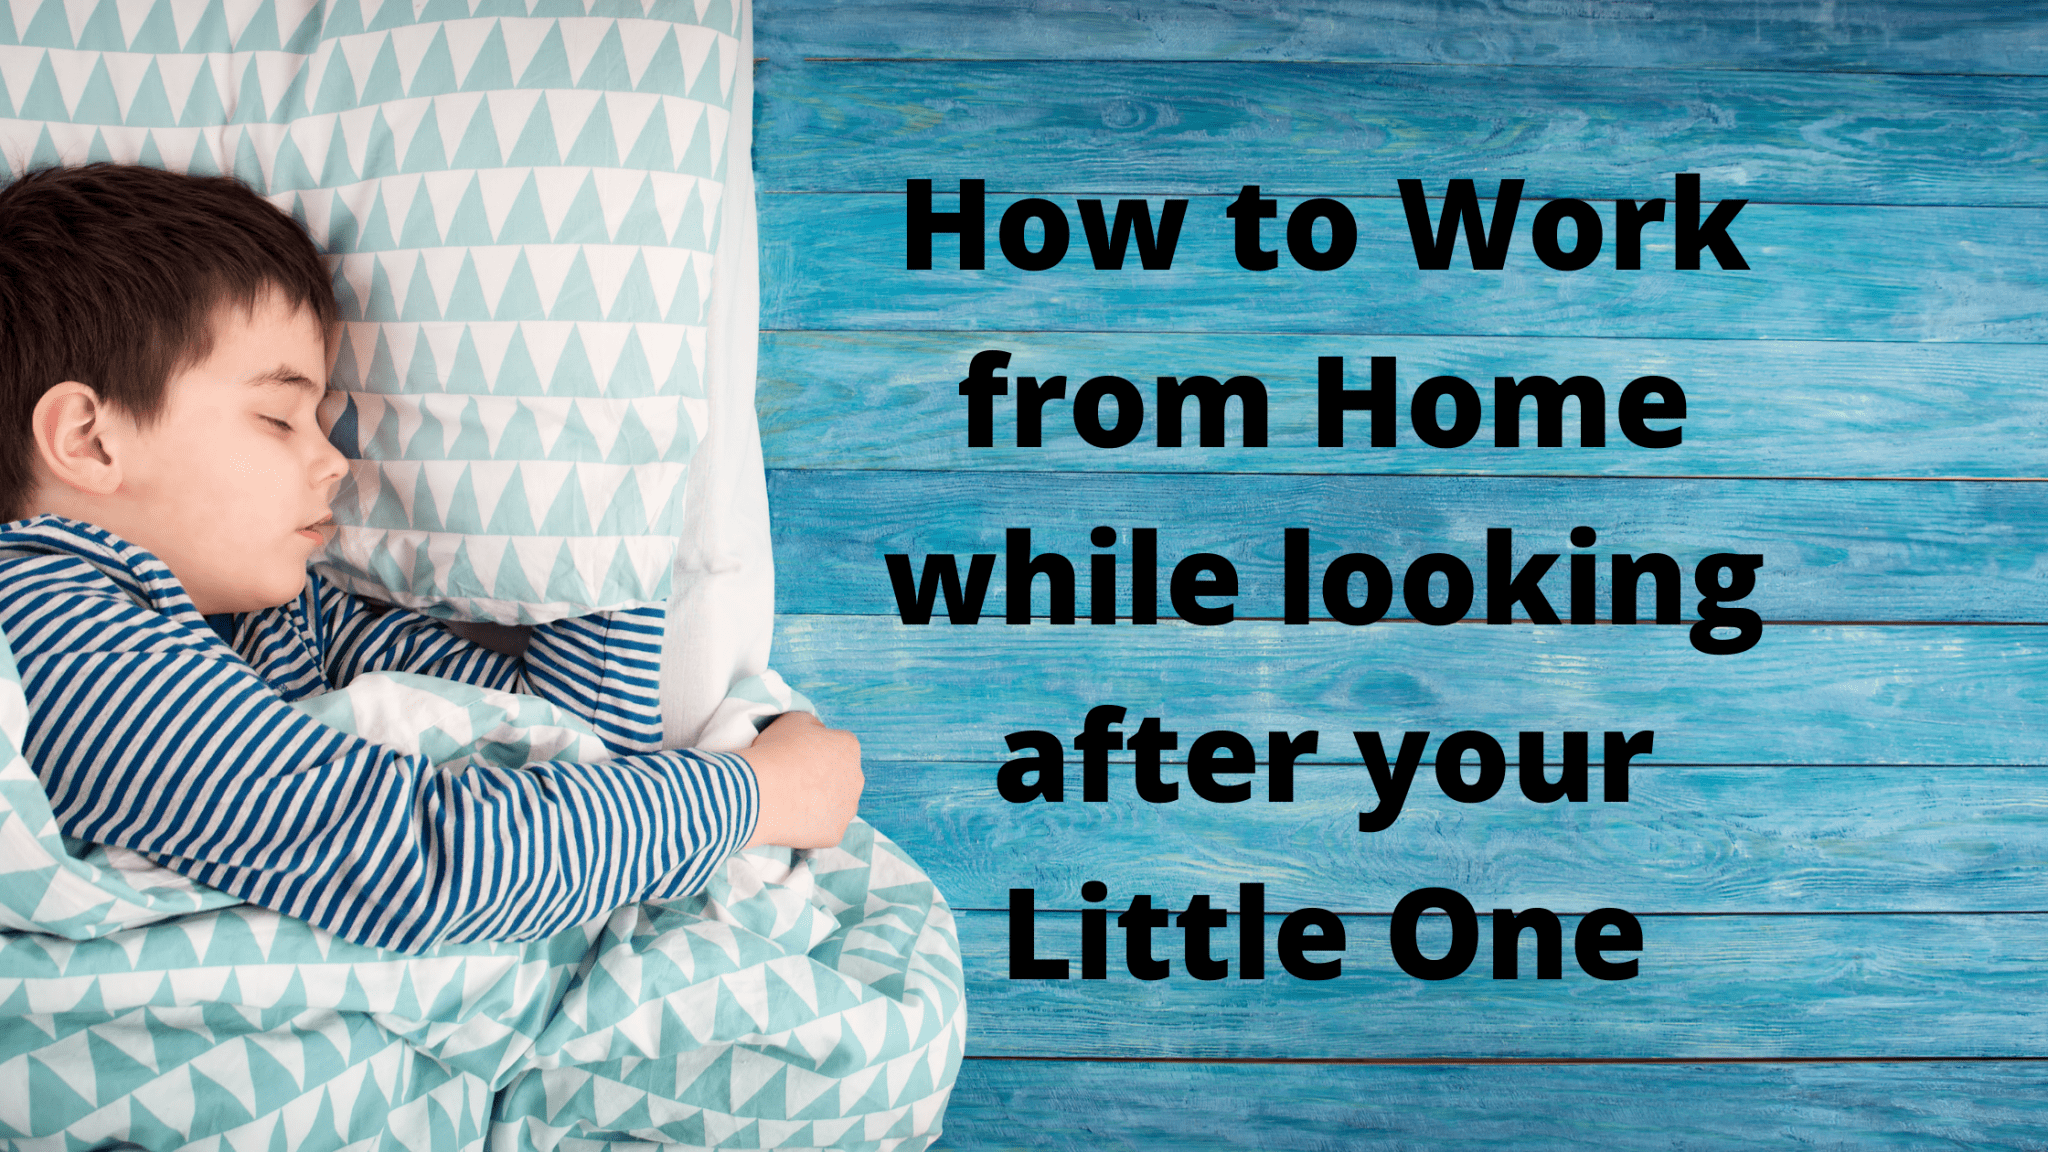 How to Work from Home while looking after your Little One